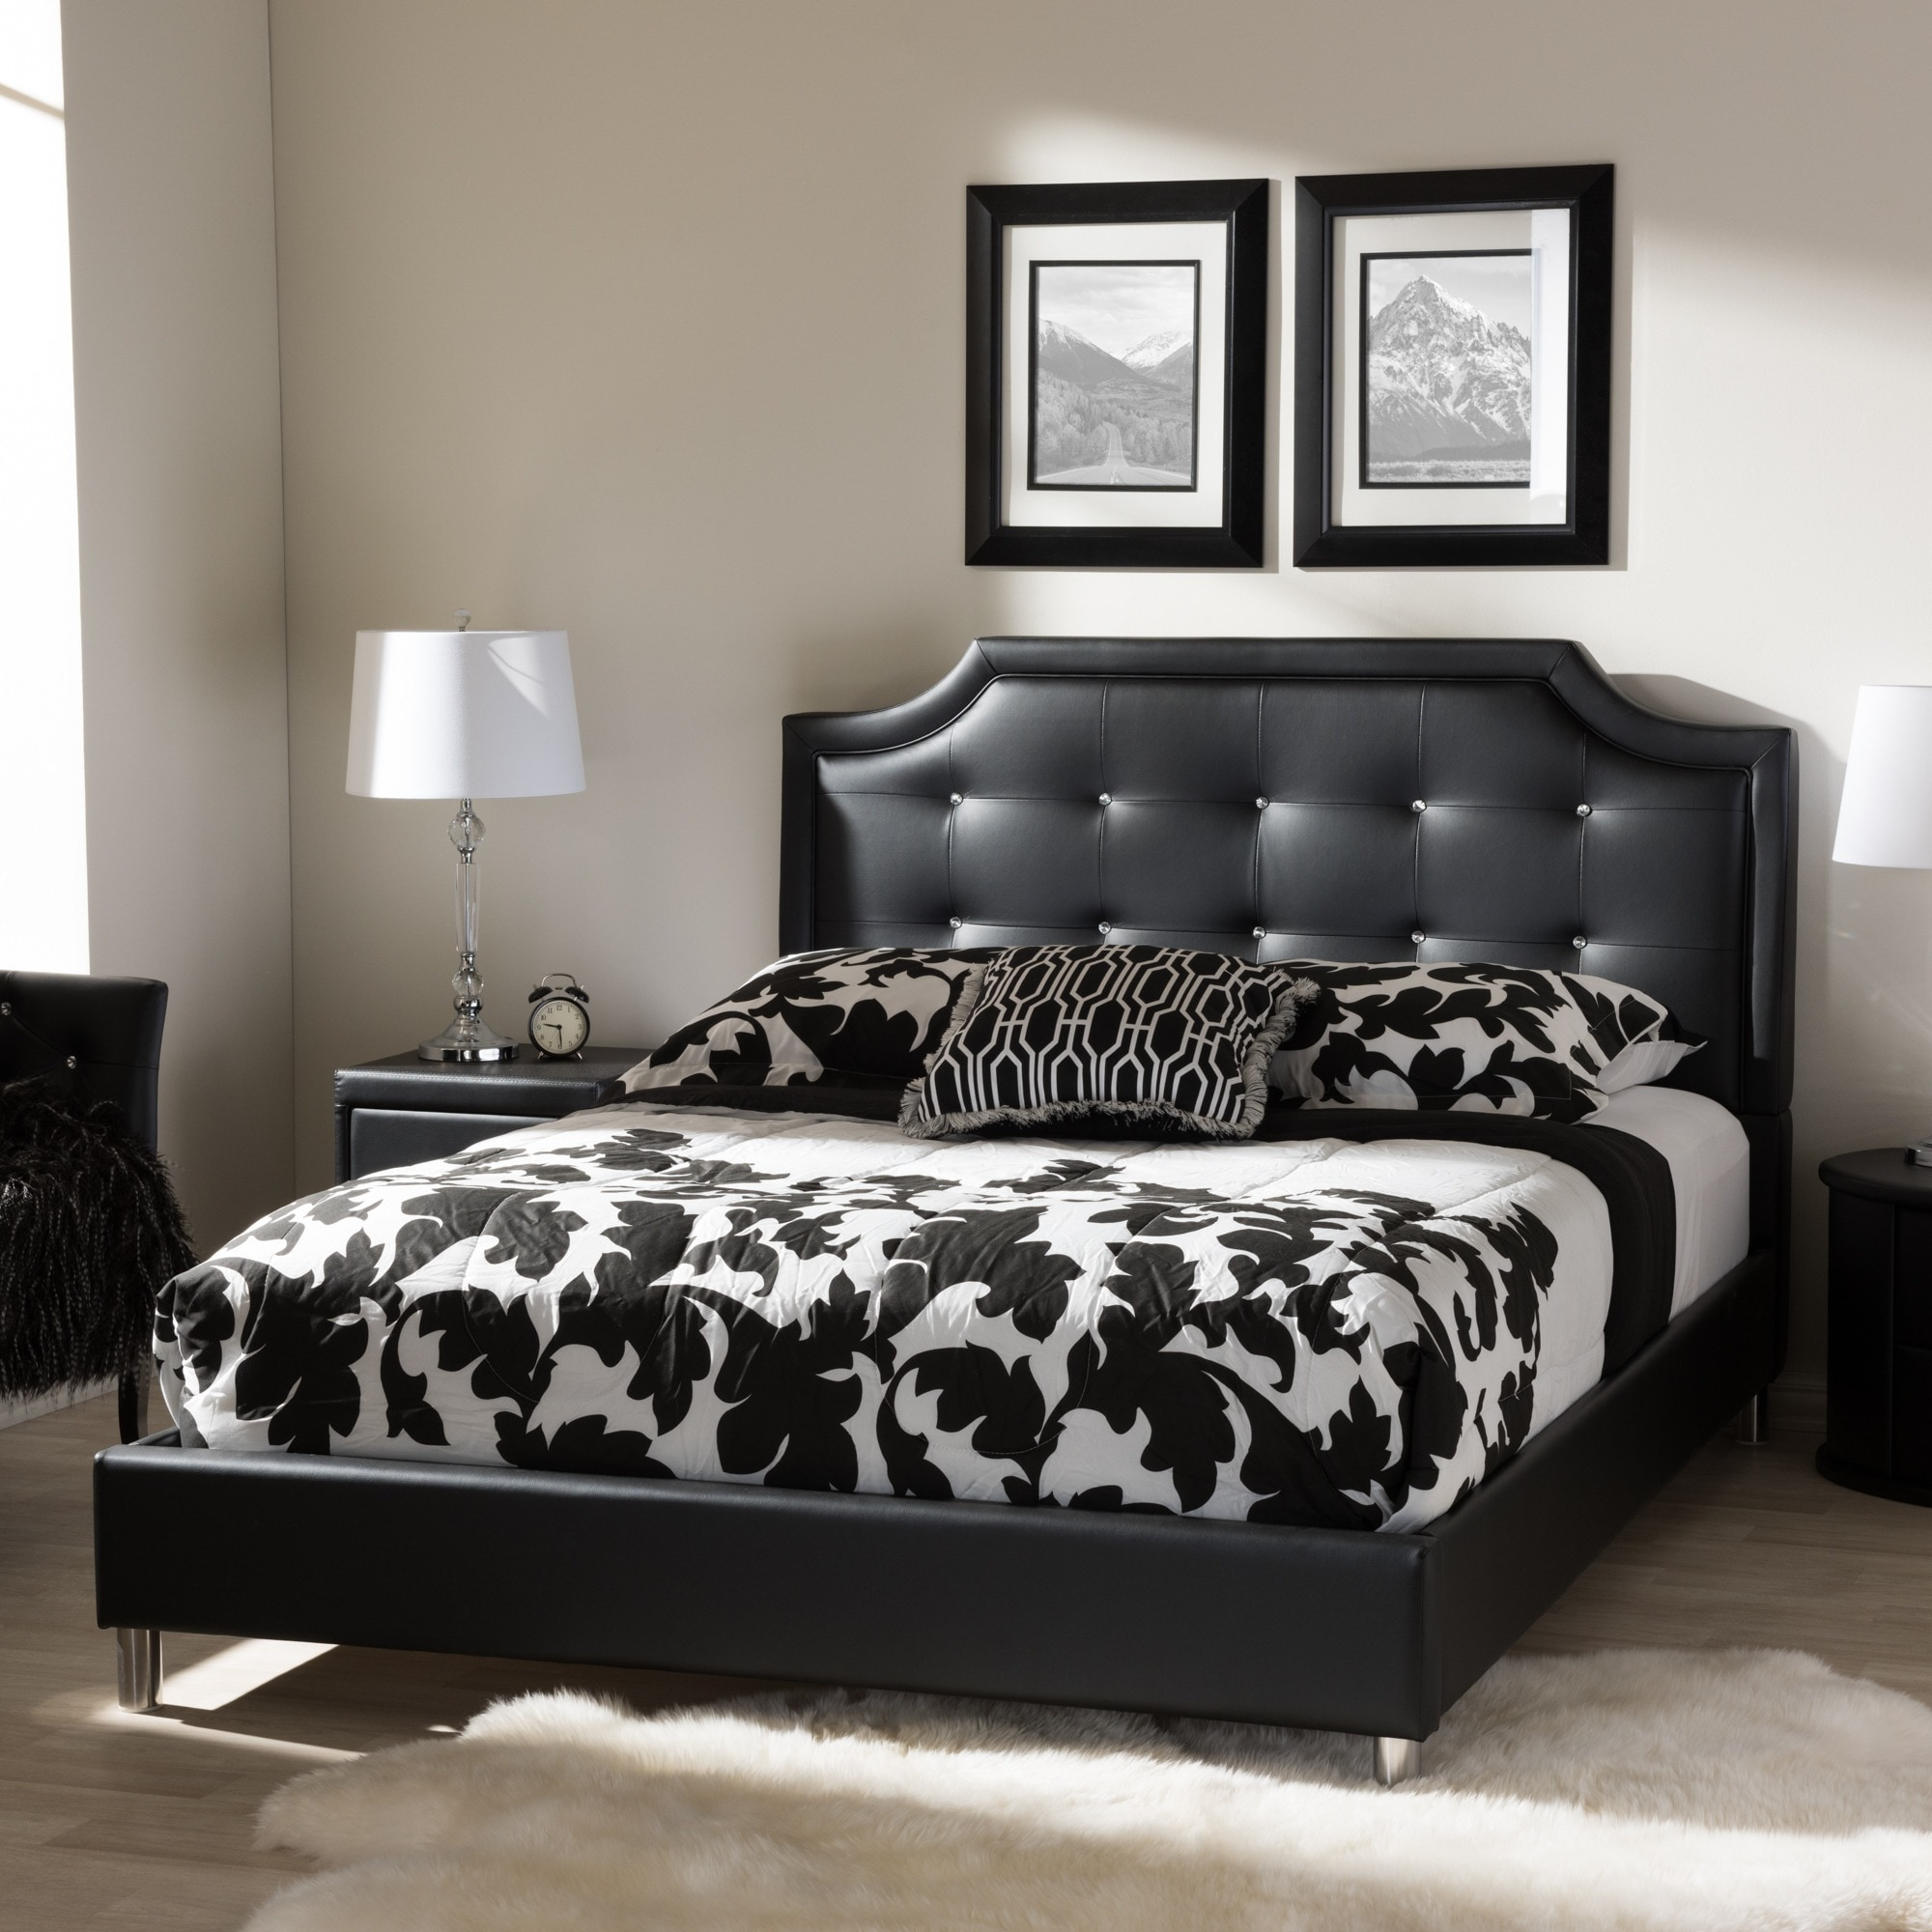 round table divider bedroom frame shelves animal traditional dark white sets wooden bedcover wing brown bedding back ideas furniture modern design long polish of masculine interior wall luxurious covered furnitures decorating headboard black paneling mattress printed skin and bed glass